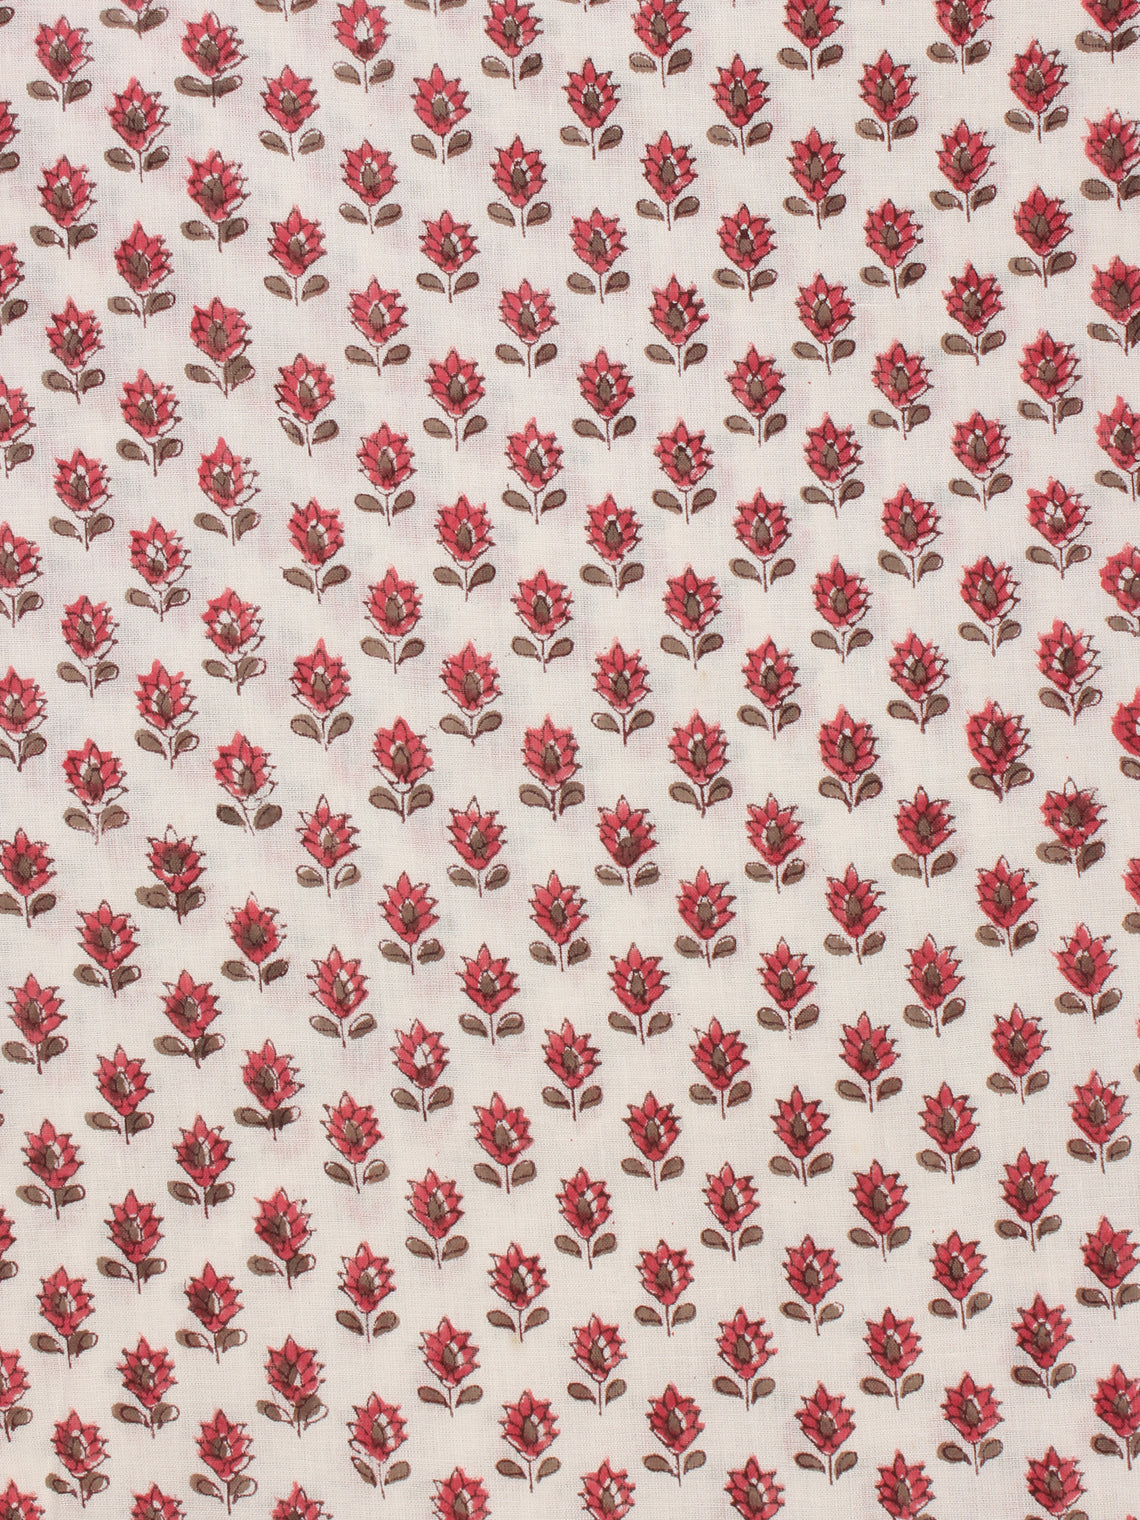 White Red Pink Hand Block Printed Cotton Fabric Per Meter - F001F2349